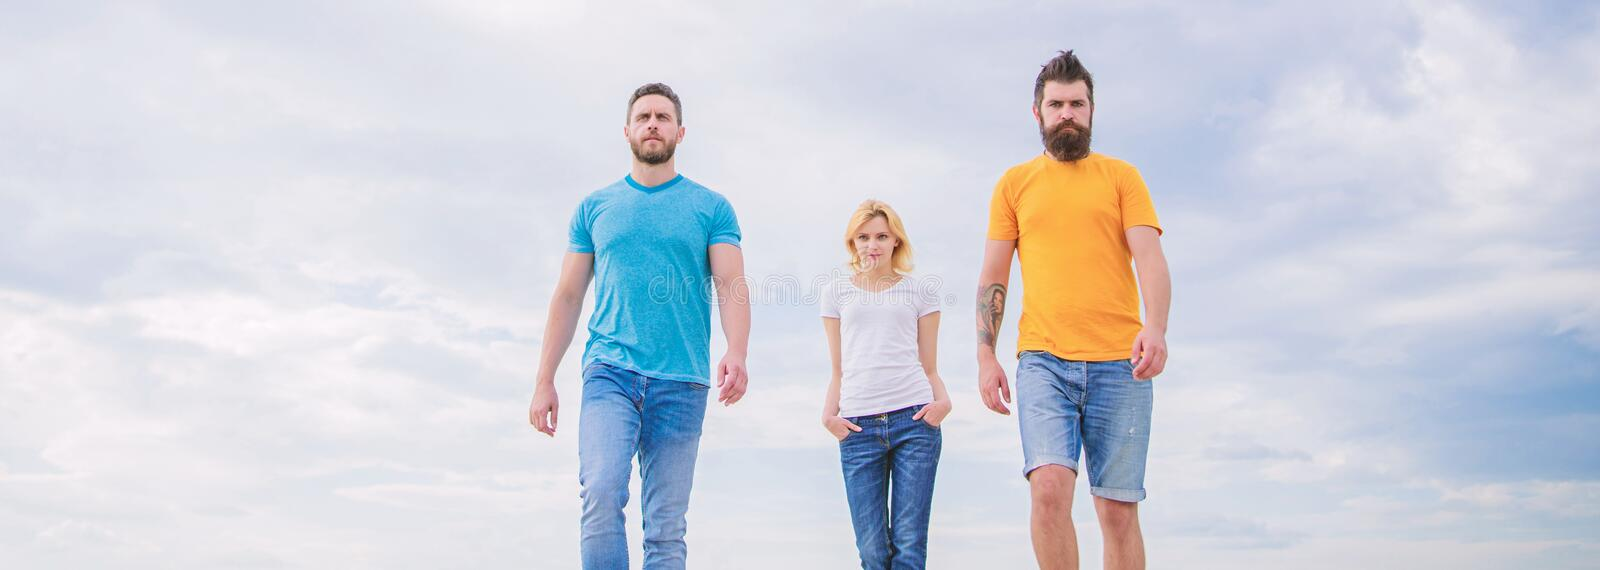 Simple casual must haves. Group of people in casual wear. Pretty woman and men friends walking outdoor. Young people in stock photo